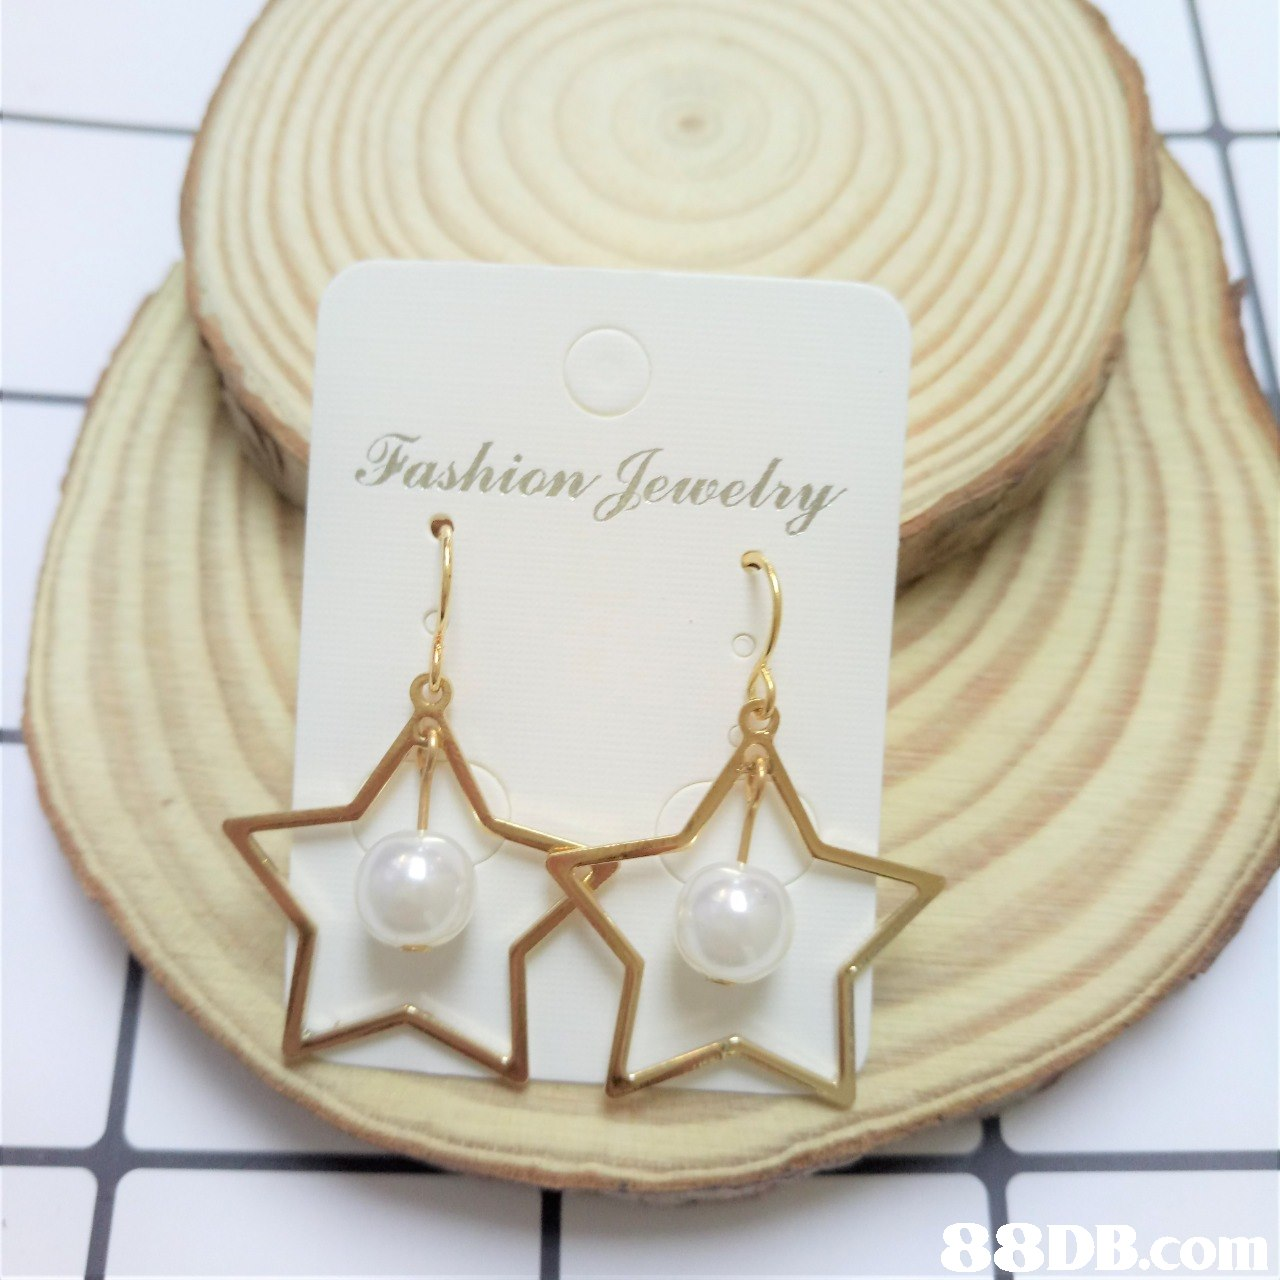 Fashion dewery DE.com  jewellery,fashion accessory,